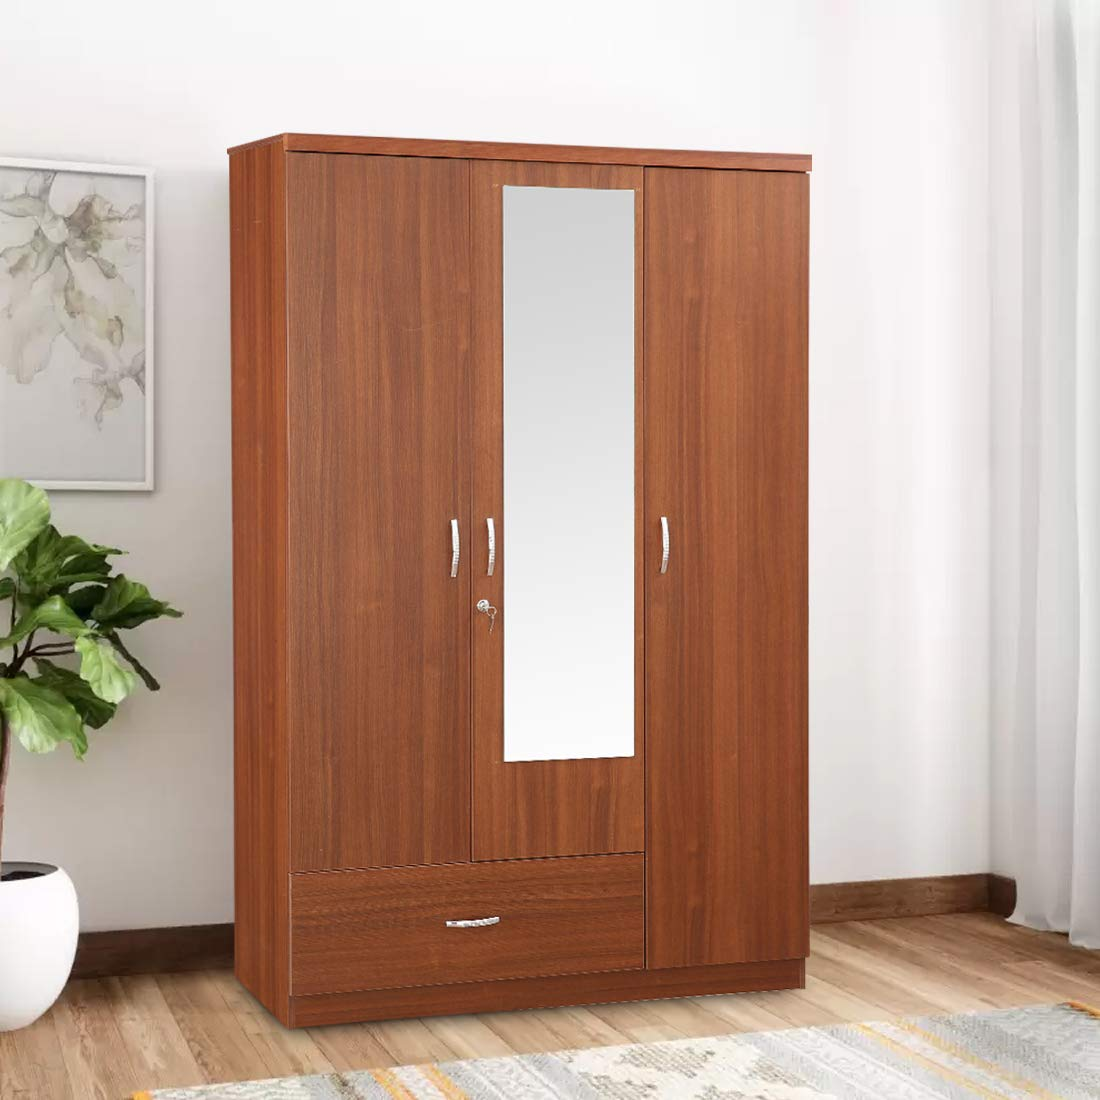 HomeTown Ultima Melamine Faced Chipboard Three Door Wardrobe